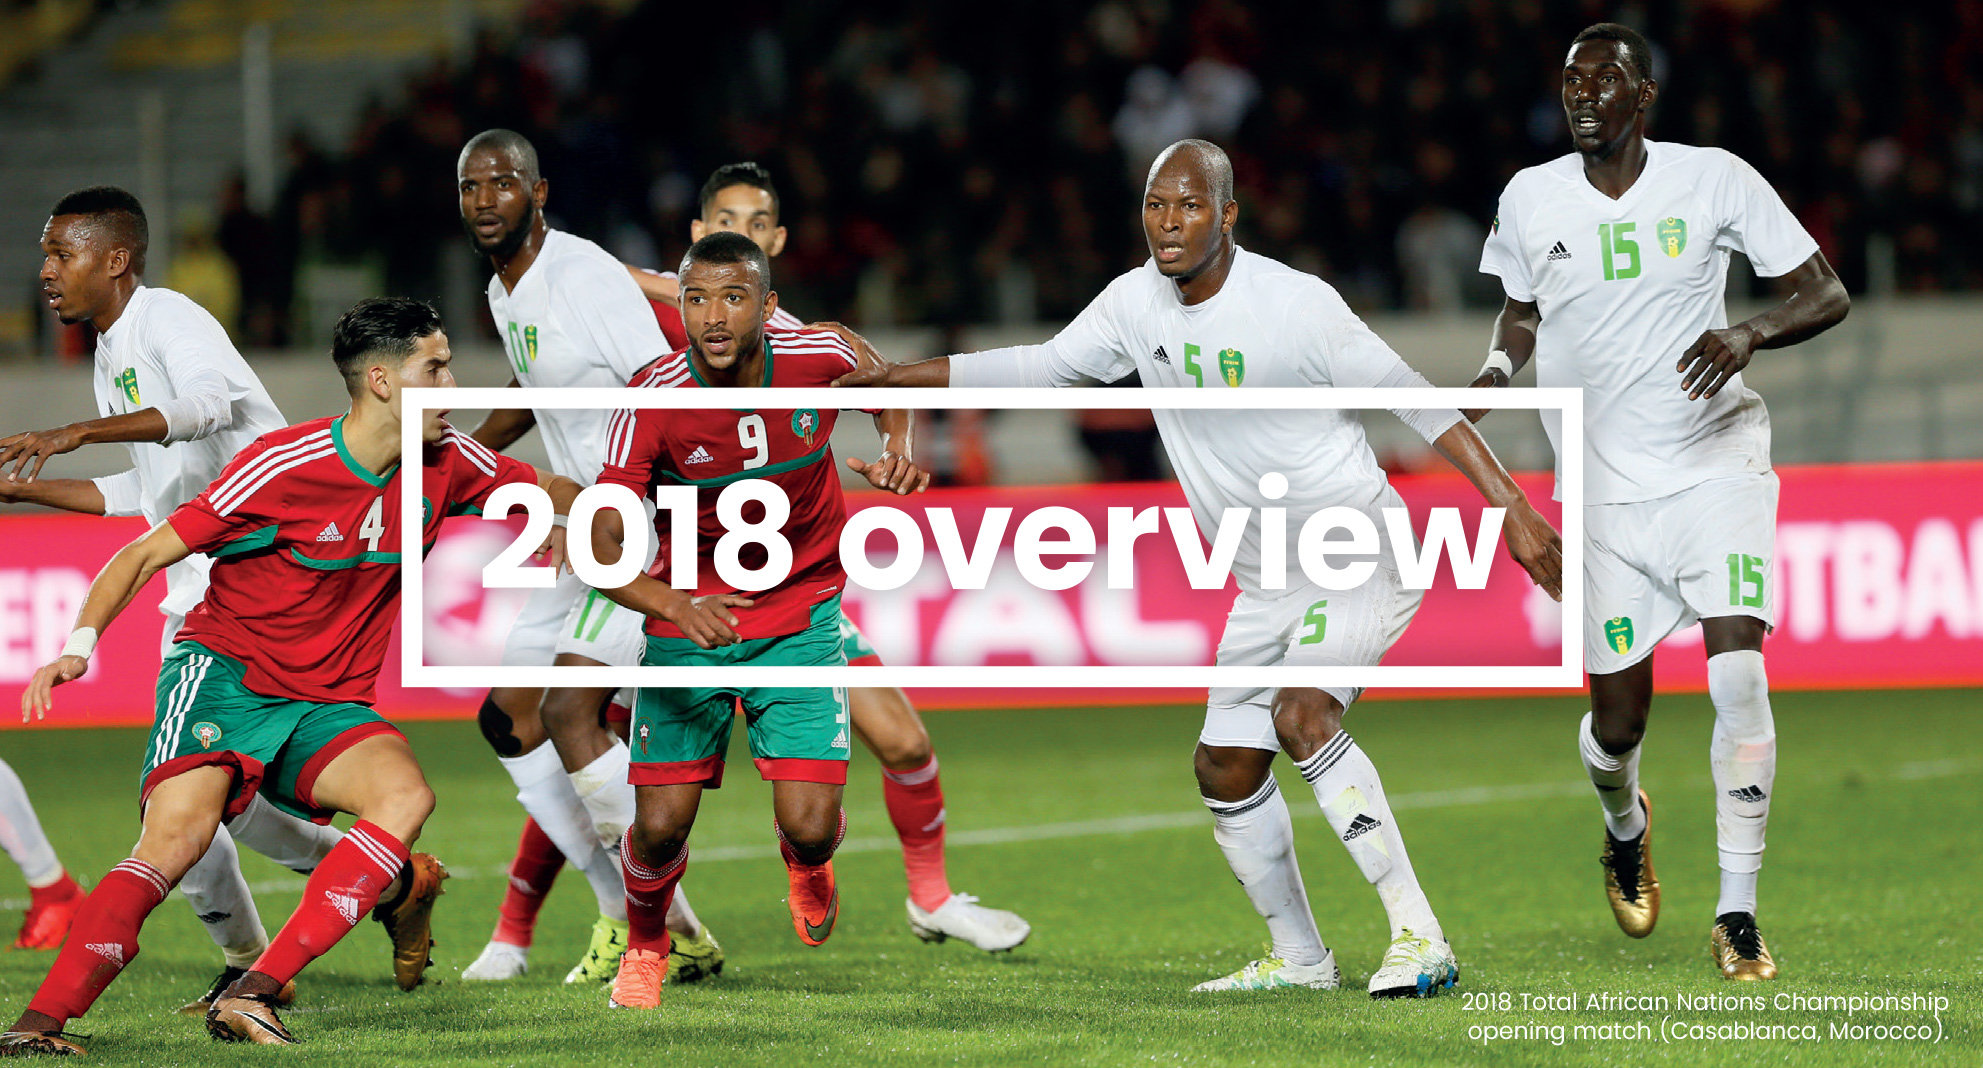 Lagardère Sports and Entertainment: 2018 Overview